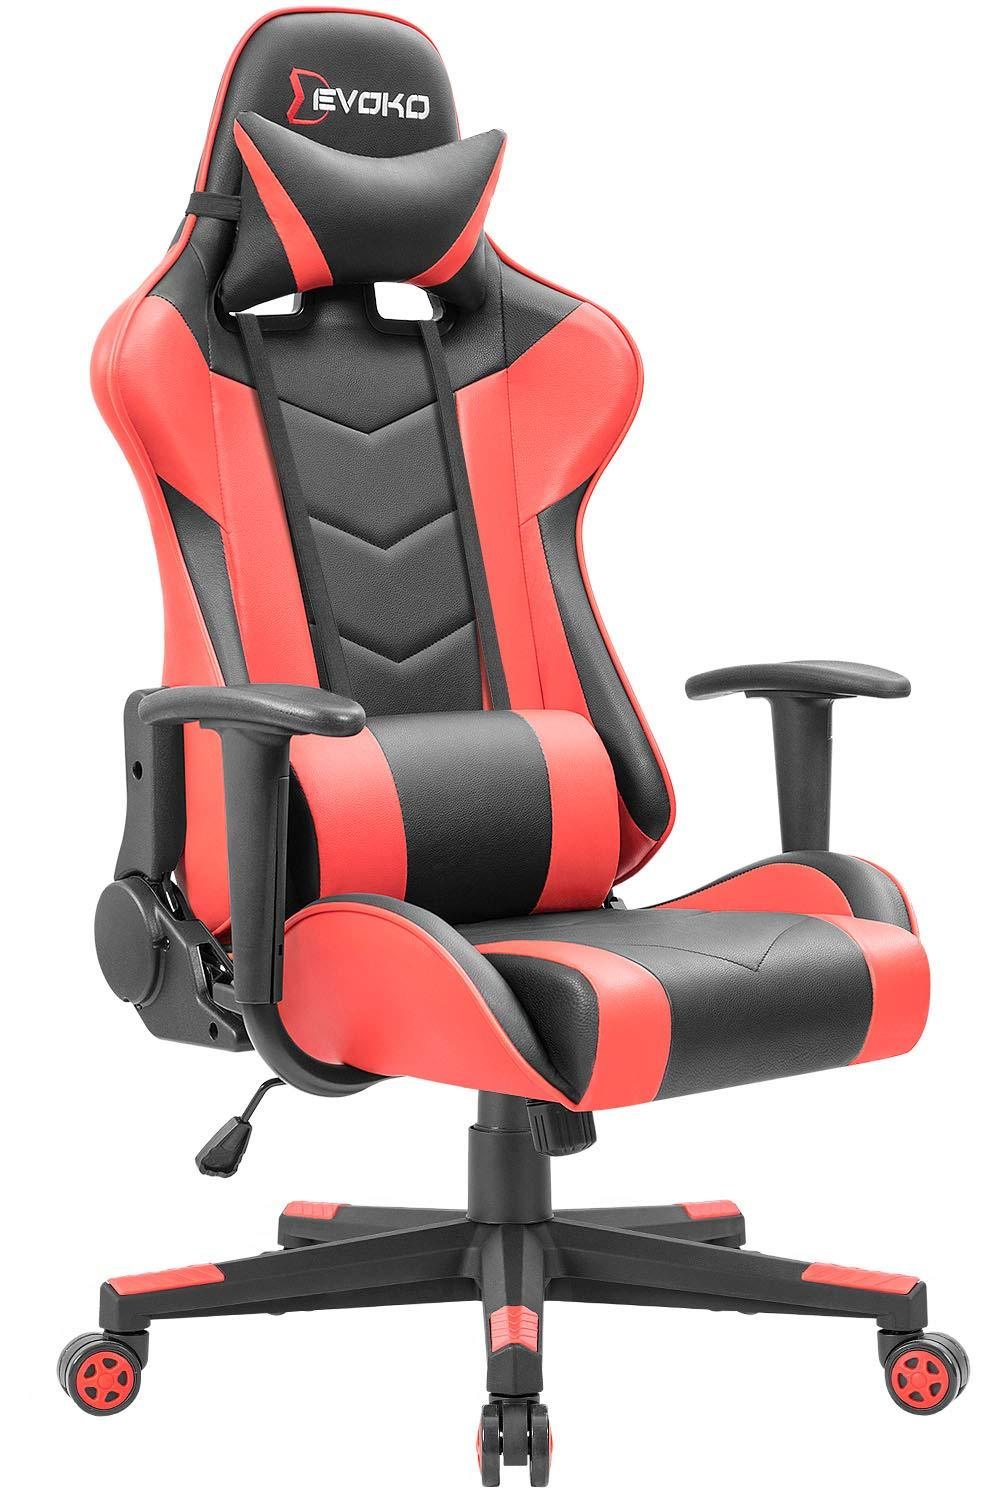 Best Gaming Chairs Under 100 Ultimategamechair